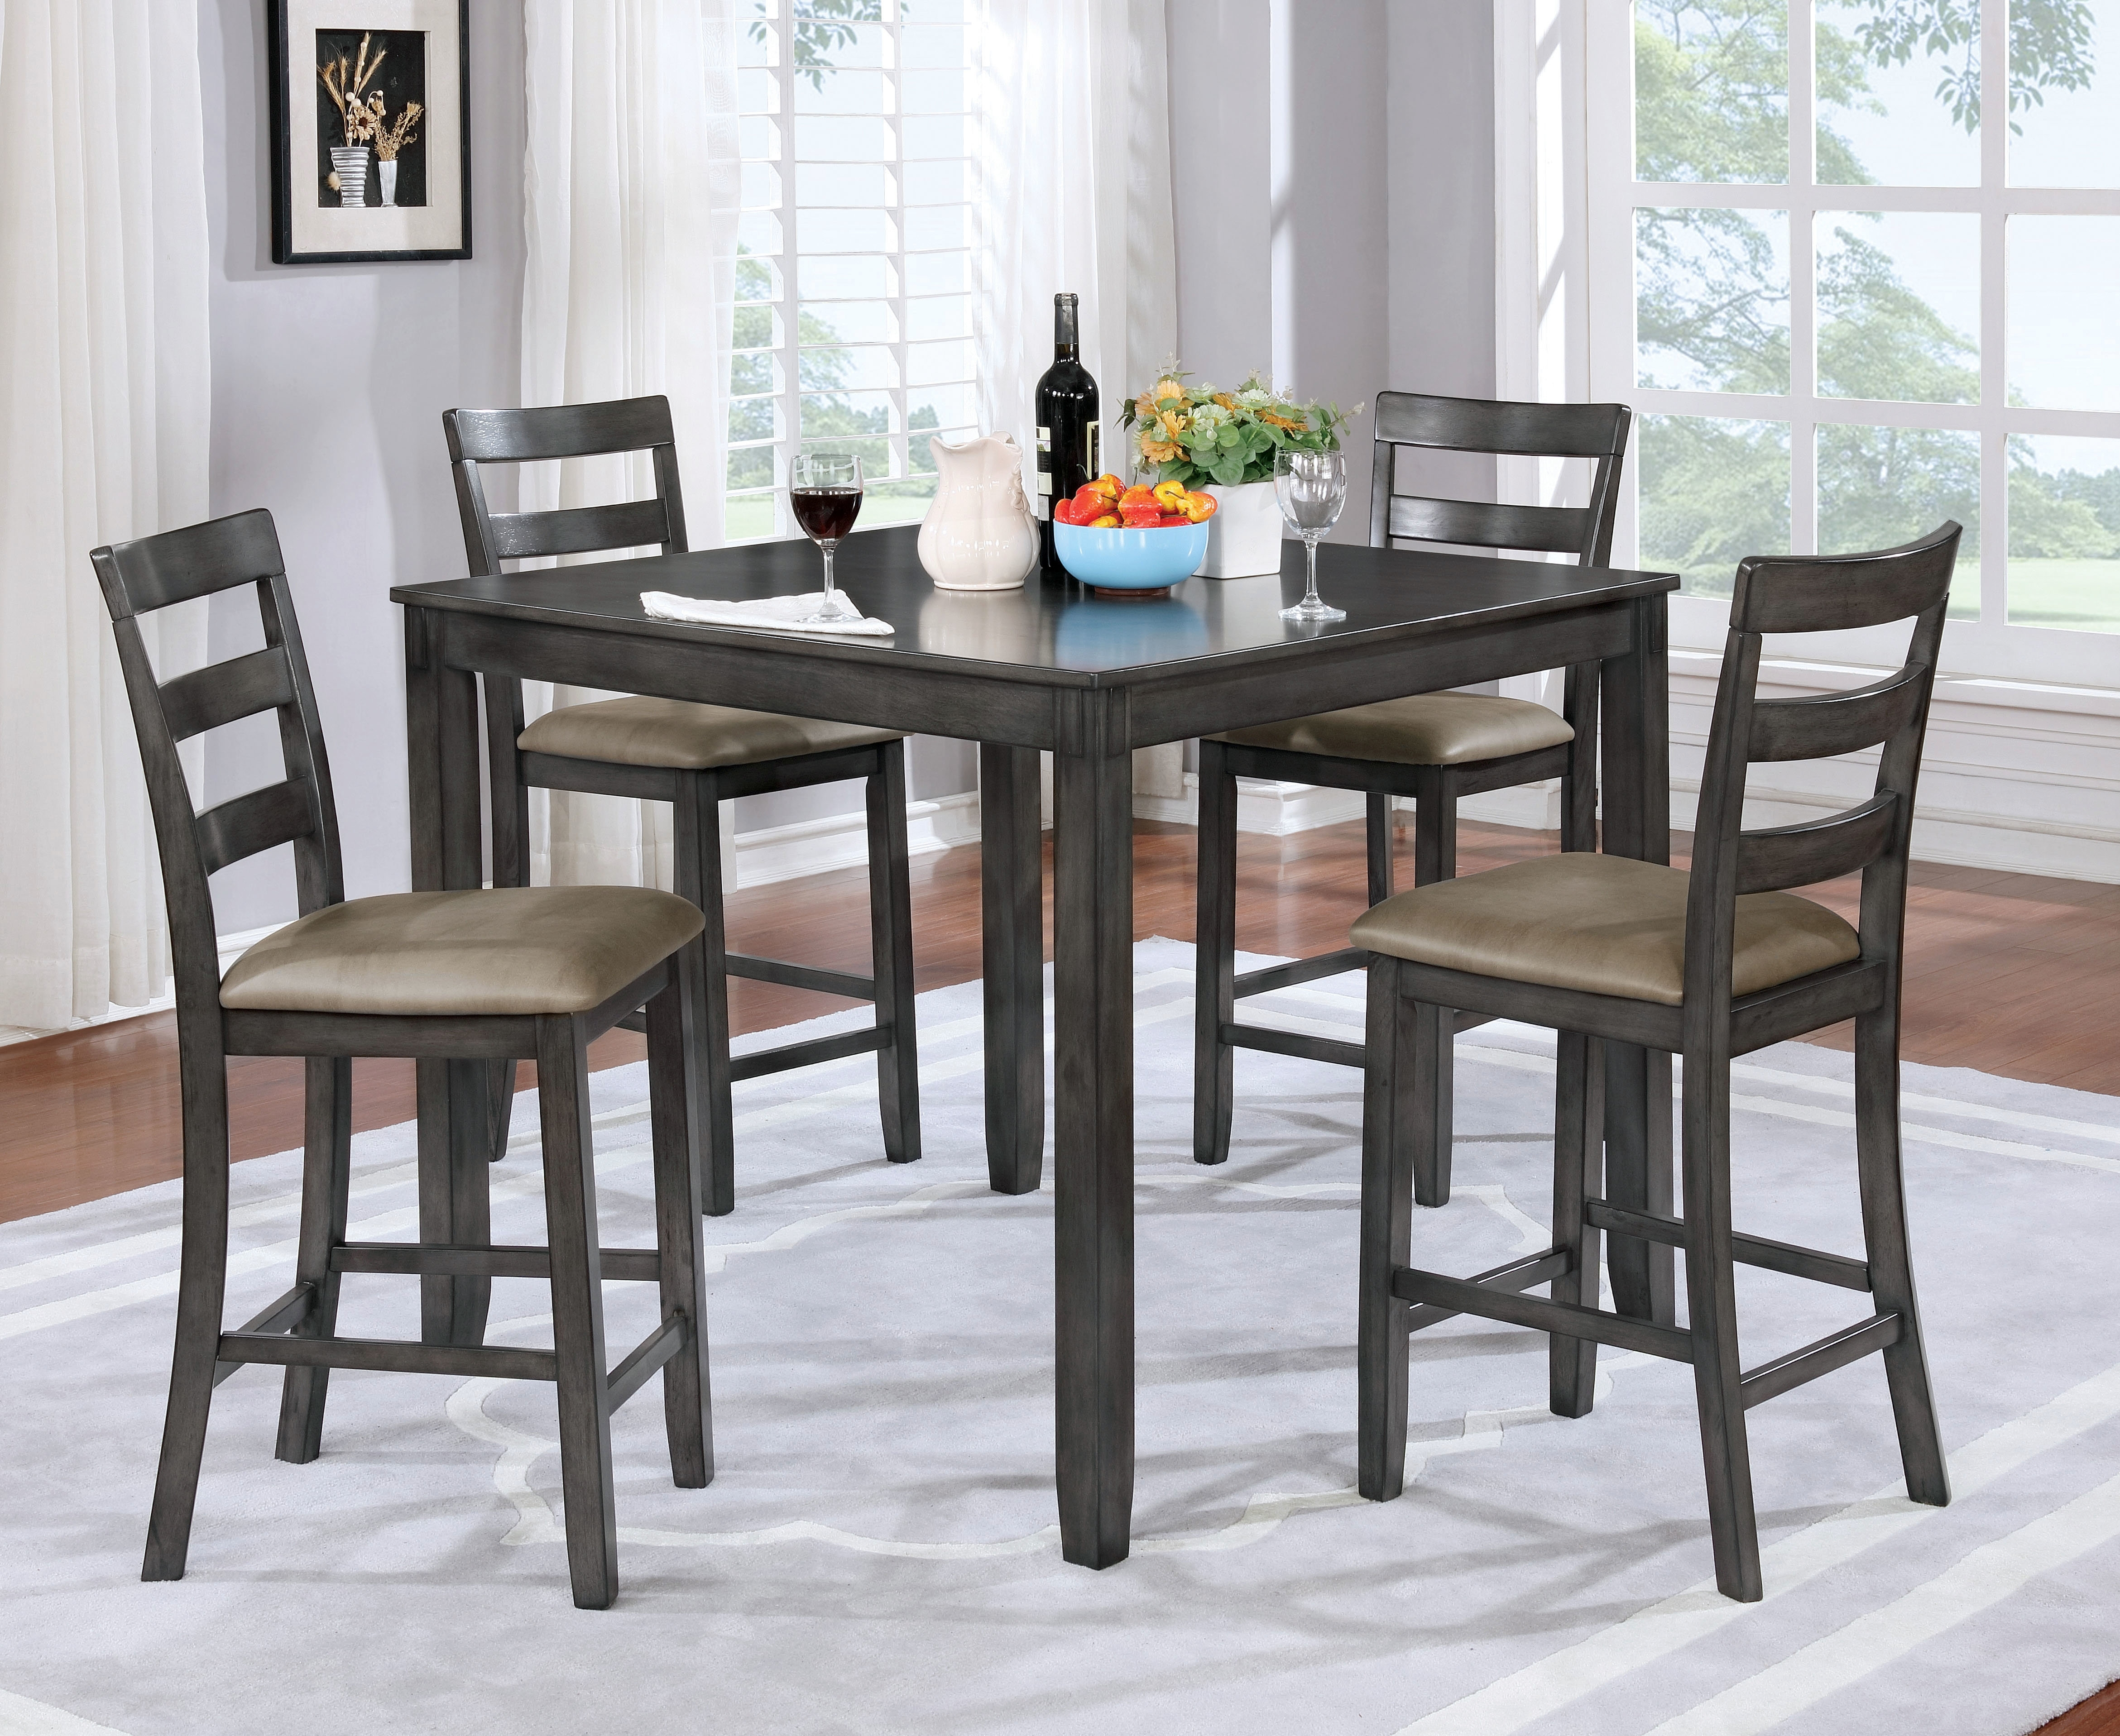 Loon Peak Dawkins 5 Piece Dining Set | Wayfair With Regard To Newest Cora 5 Piece Dining Sets (Image 16 of 20)